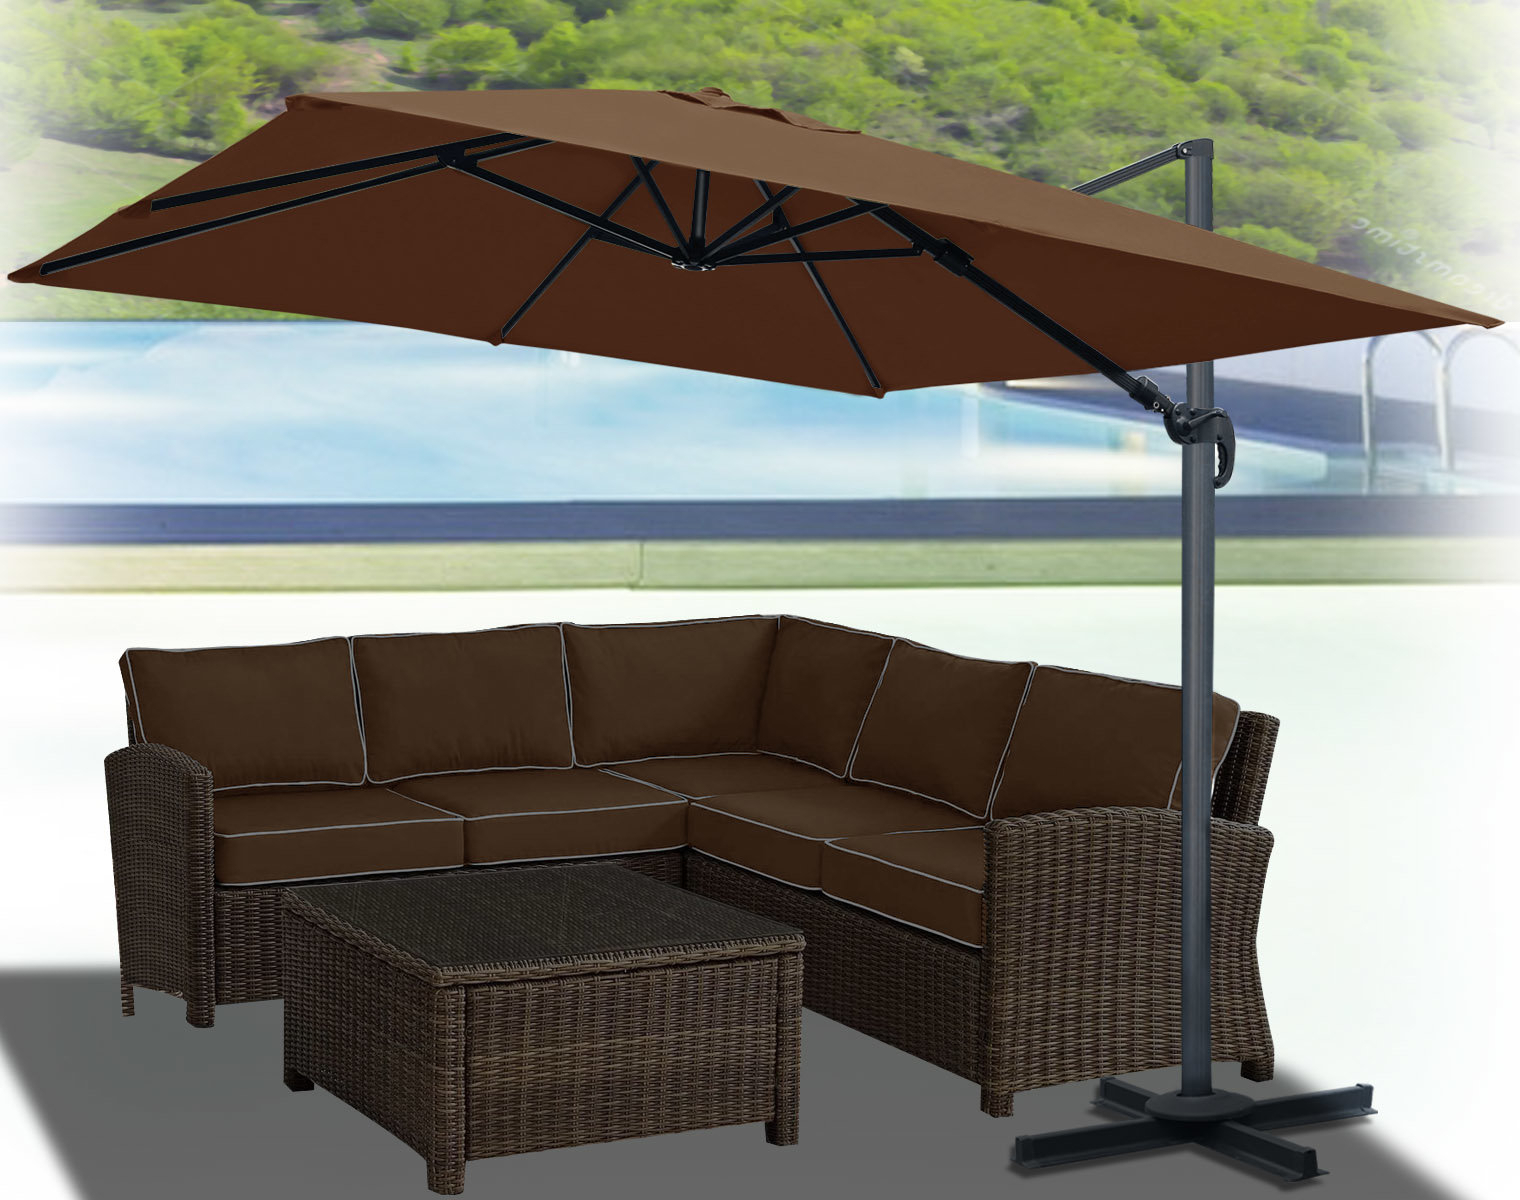 Famous Spitler Square Cantilever Umbrellas Regarding Klass Hanging Patio 10' Square Cantilever Umbrella (View 4 of 20)